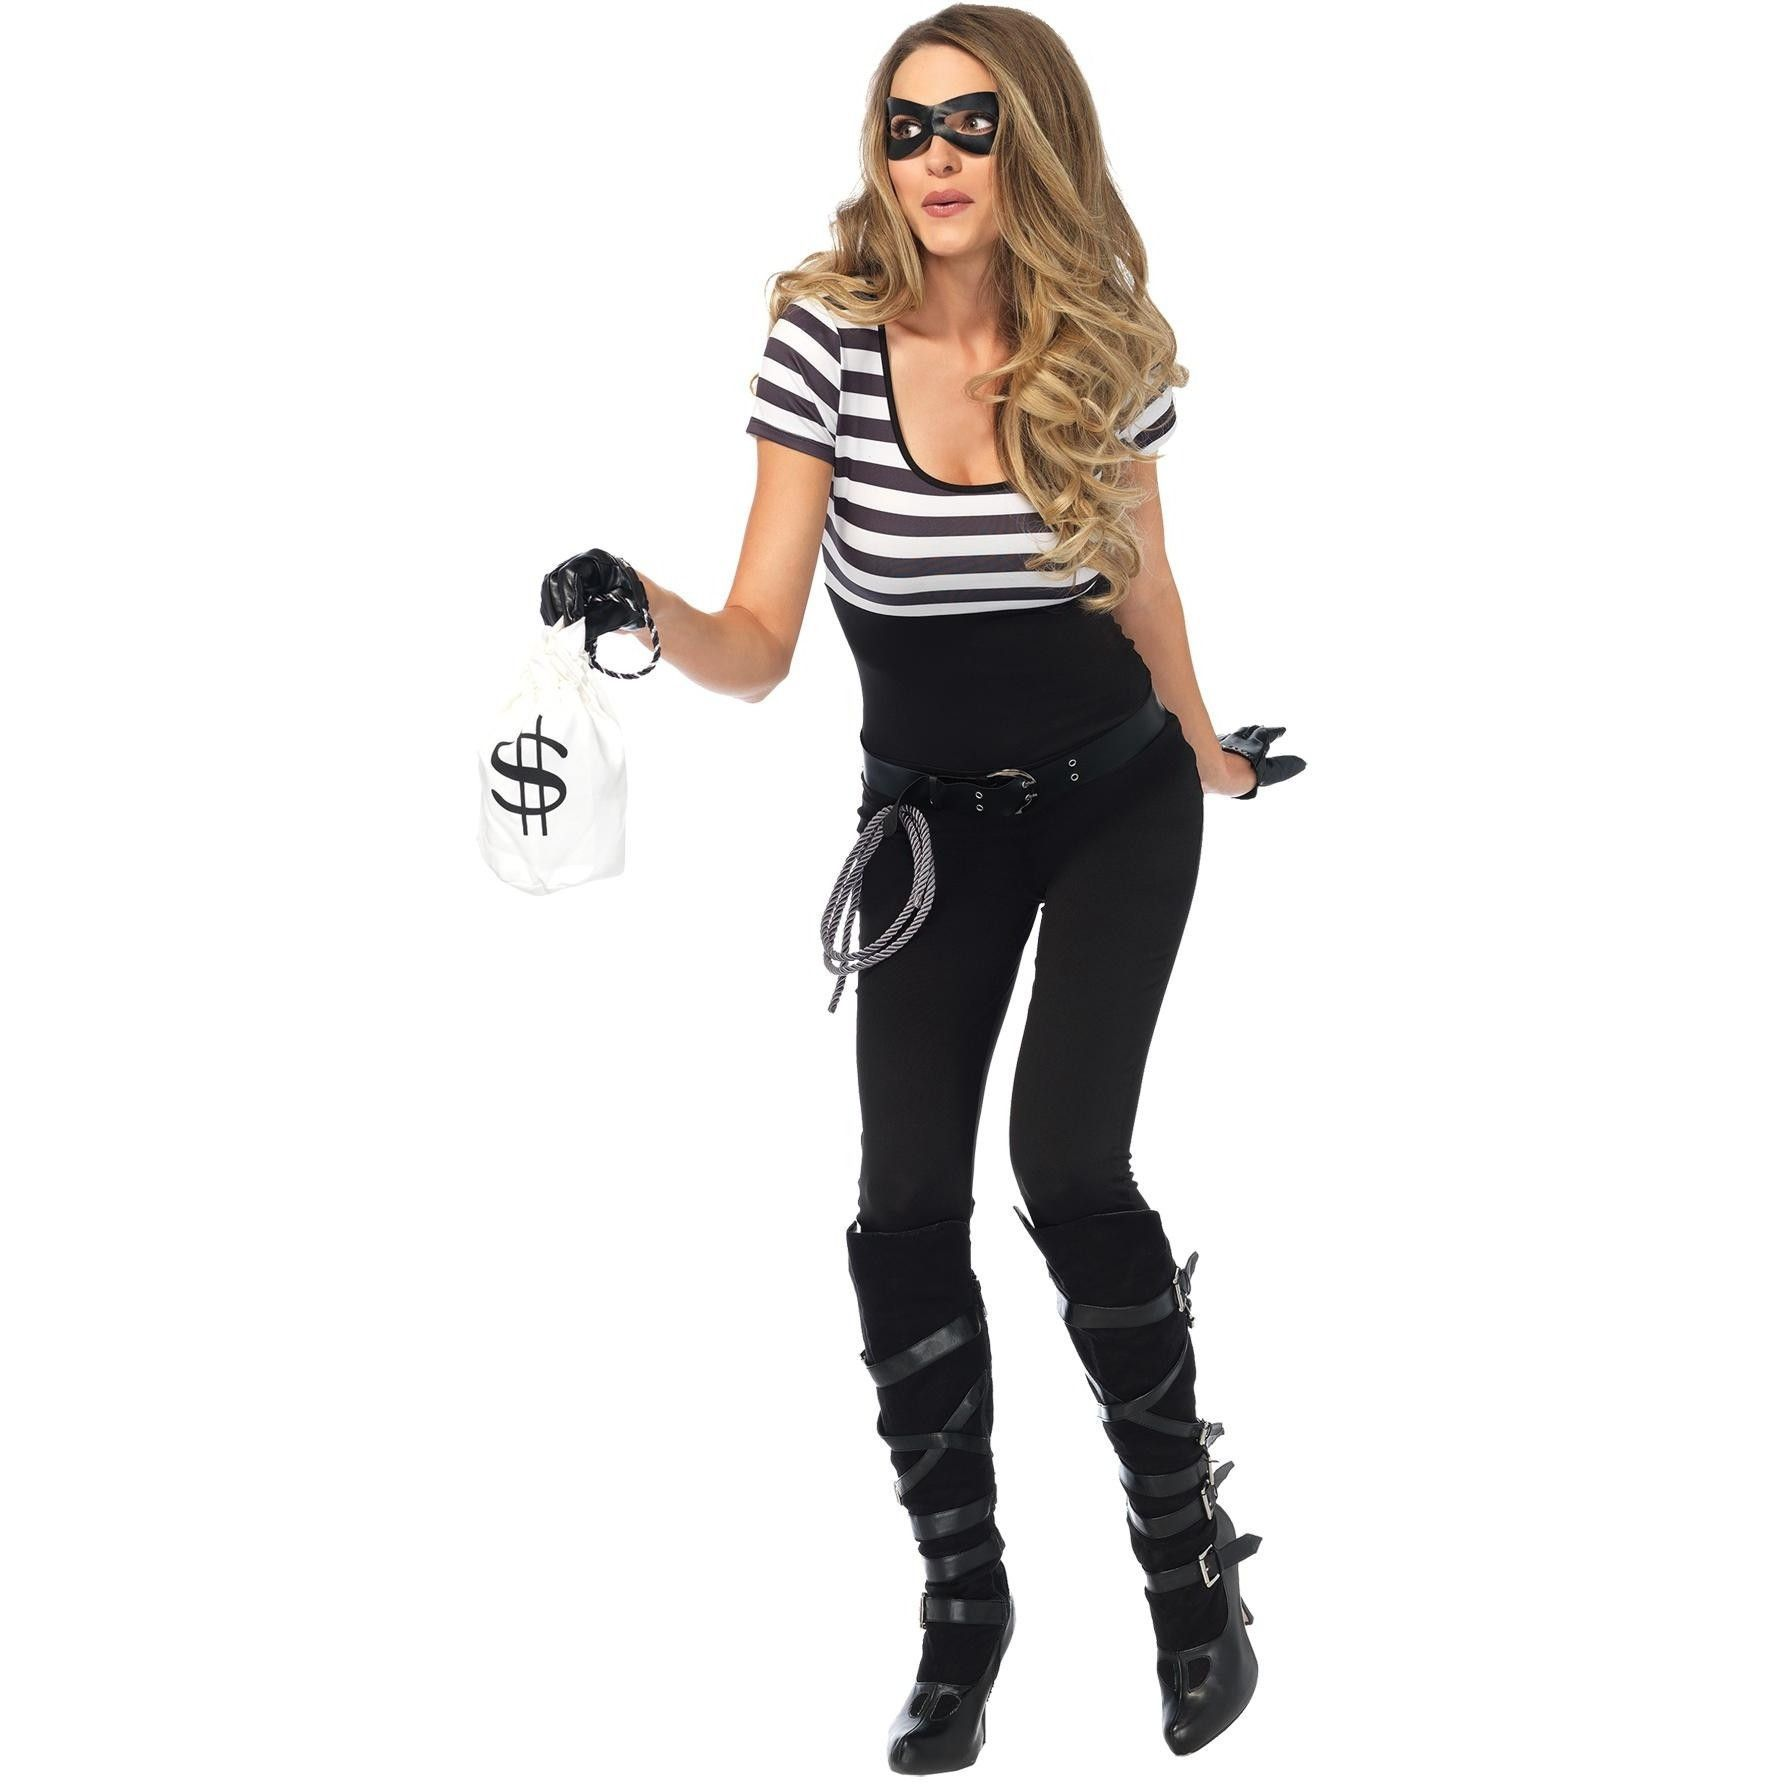 Bank Robbin Bandit Small (With images) Robber costume